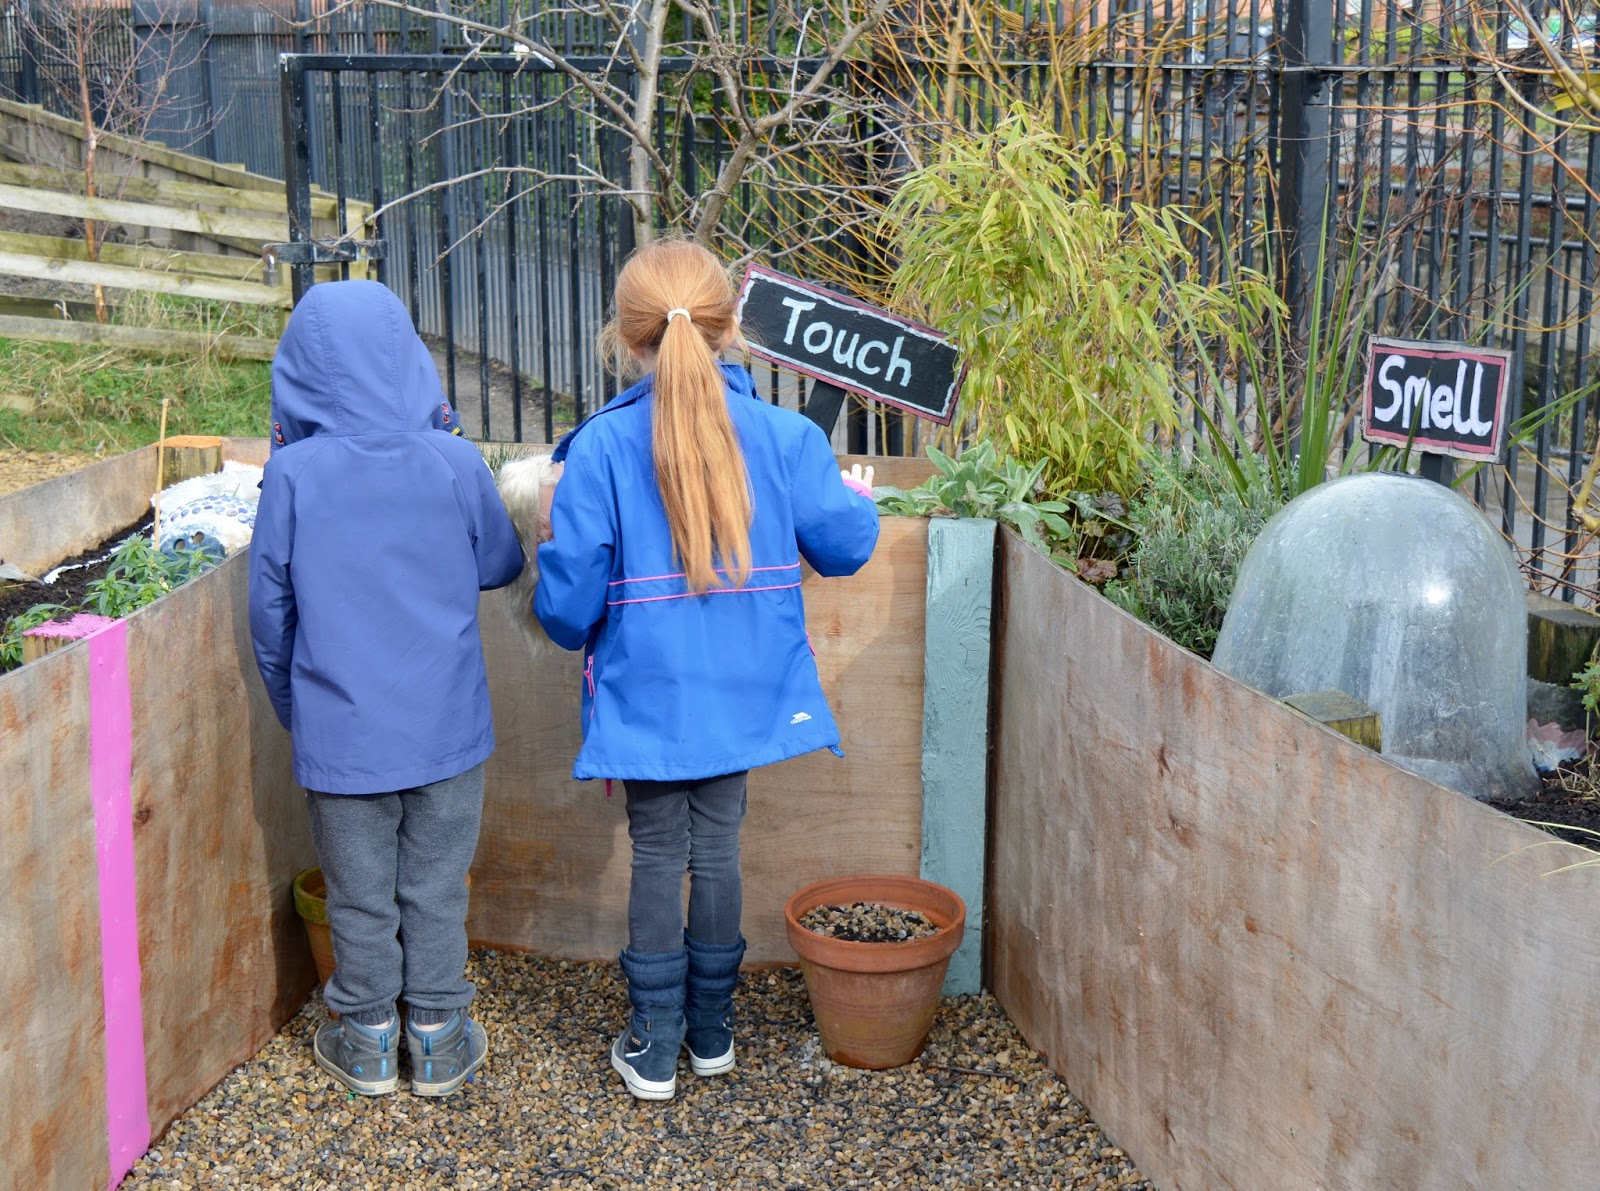 Ouseburn Farm Newcastle | A FREE Place to Take the Kids - sensory garden touch